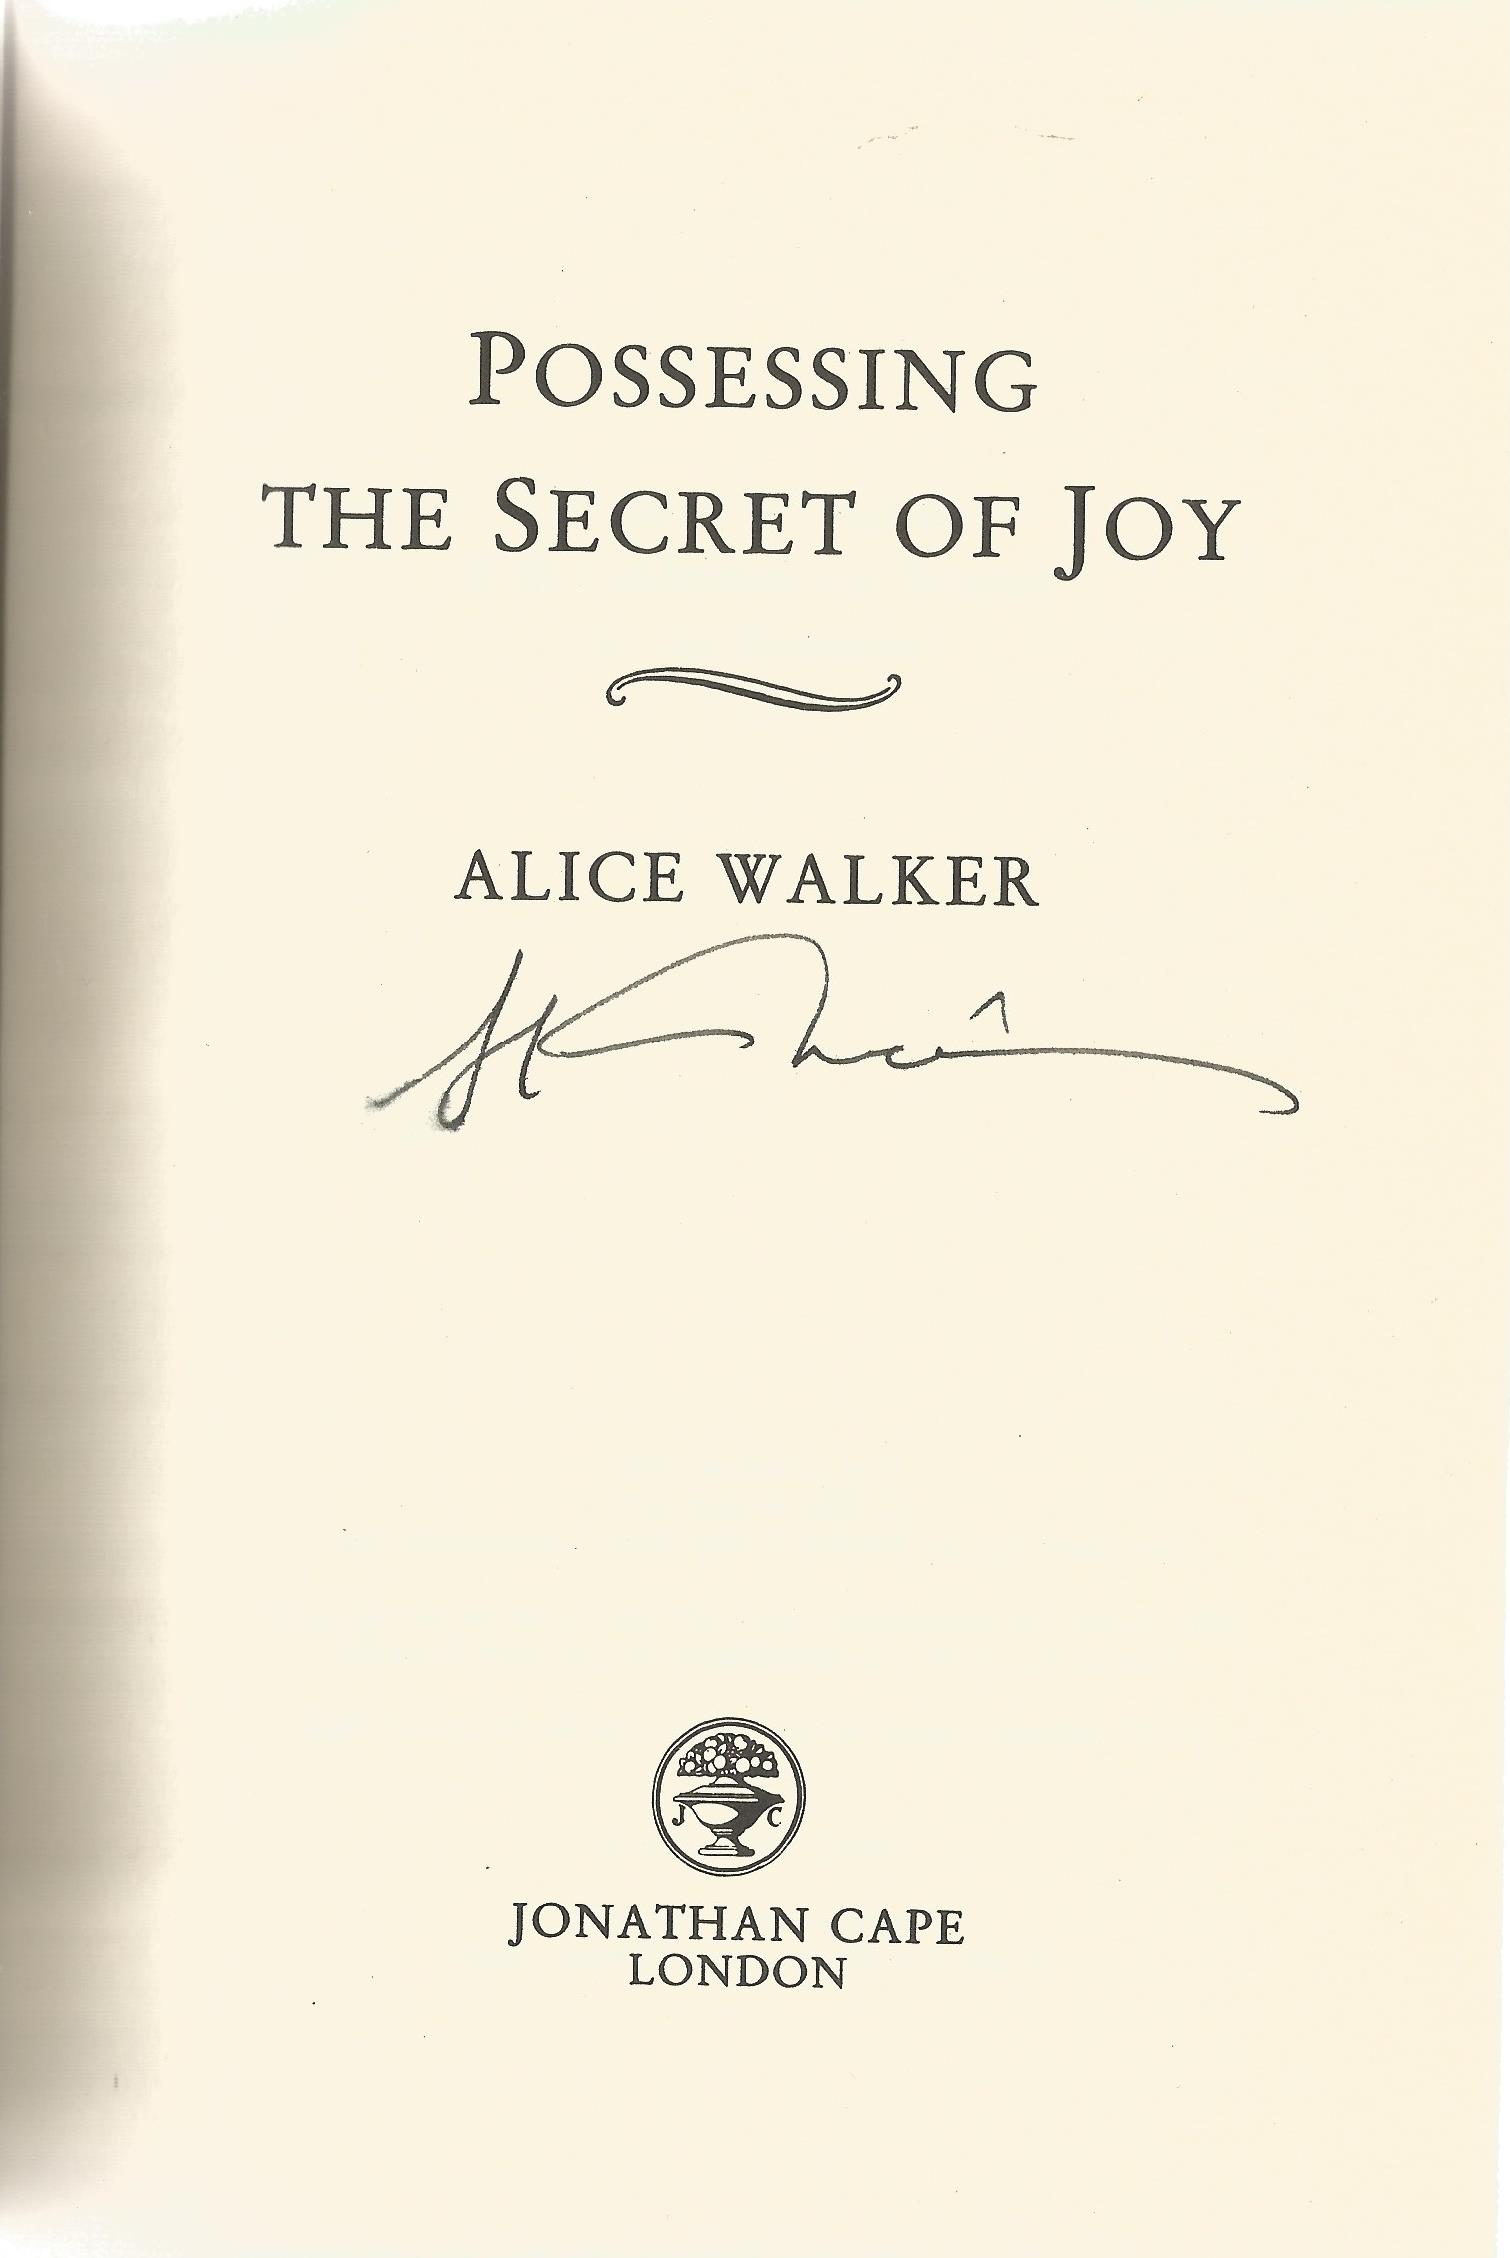 Alice Walker Hardback Book Possessing the Secret of Joy signed by the Author on the Title Page First - Image 2 of 2